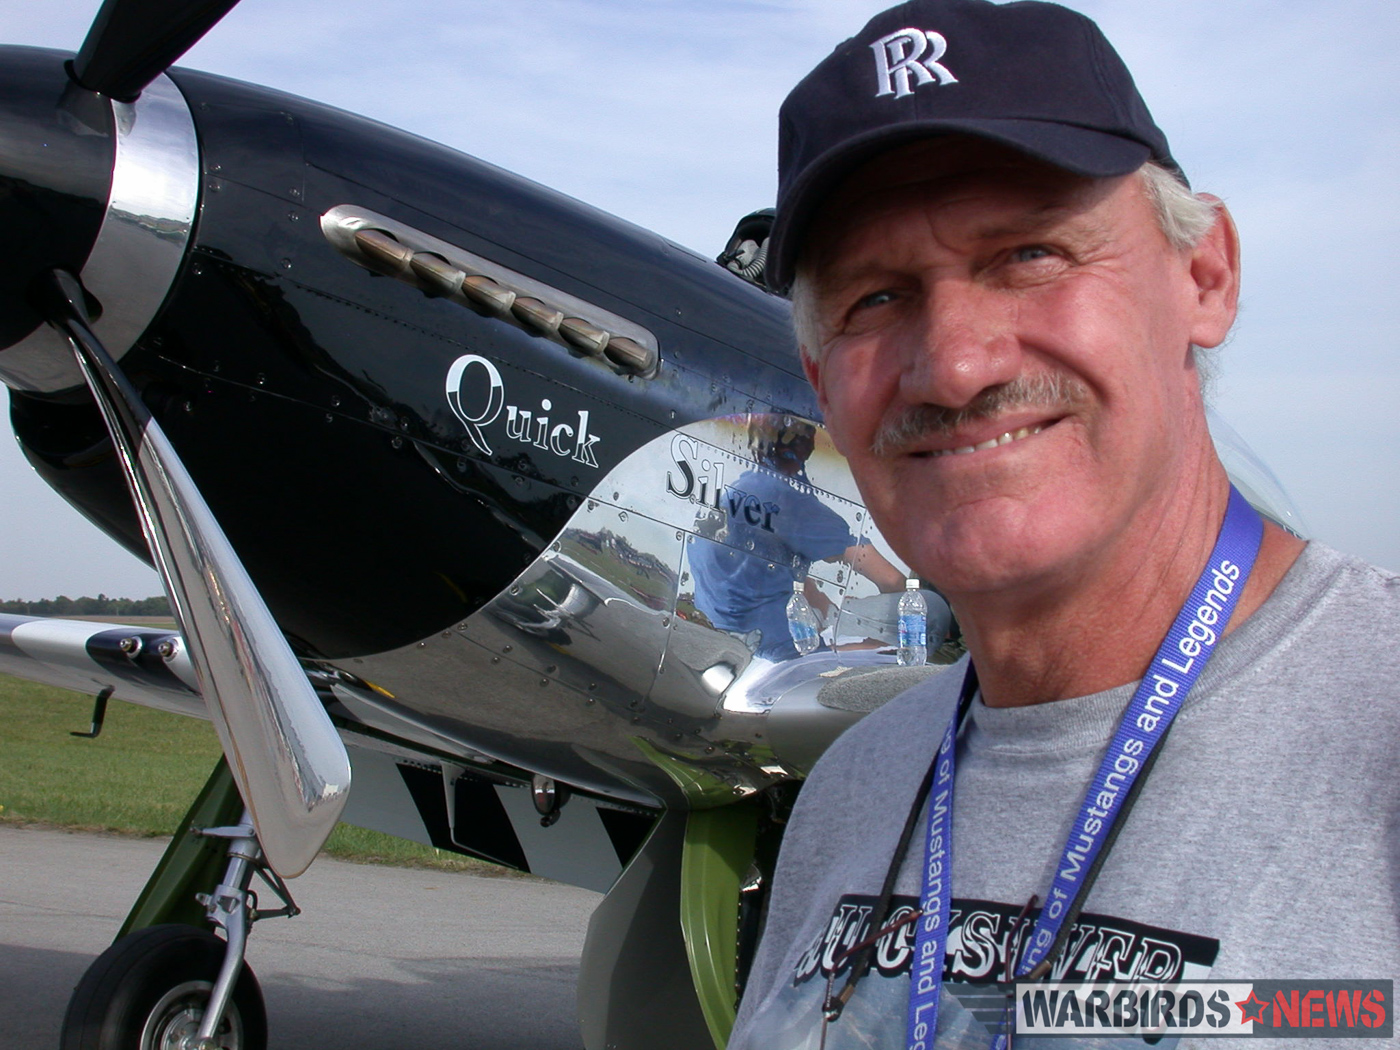 Bill Yoak at the Gathering of Mustangs and Legends in 2007. (photo by Jerry O'Neill)